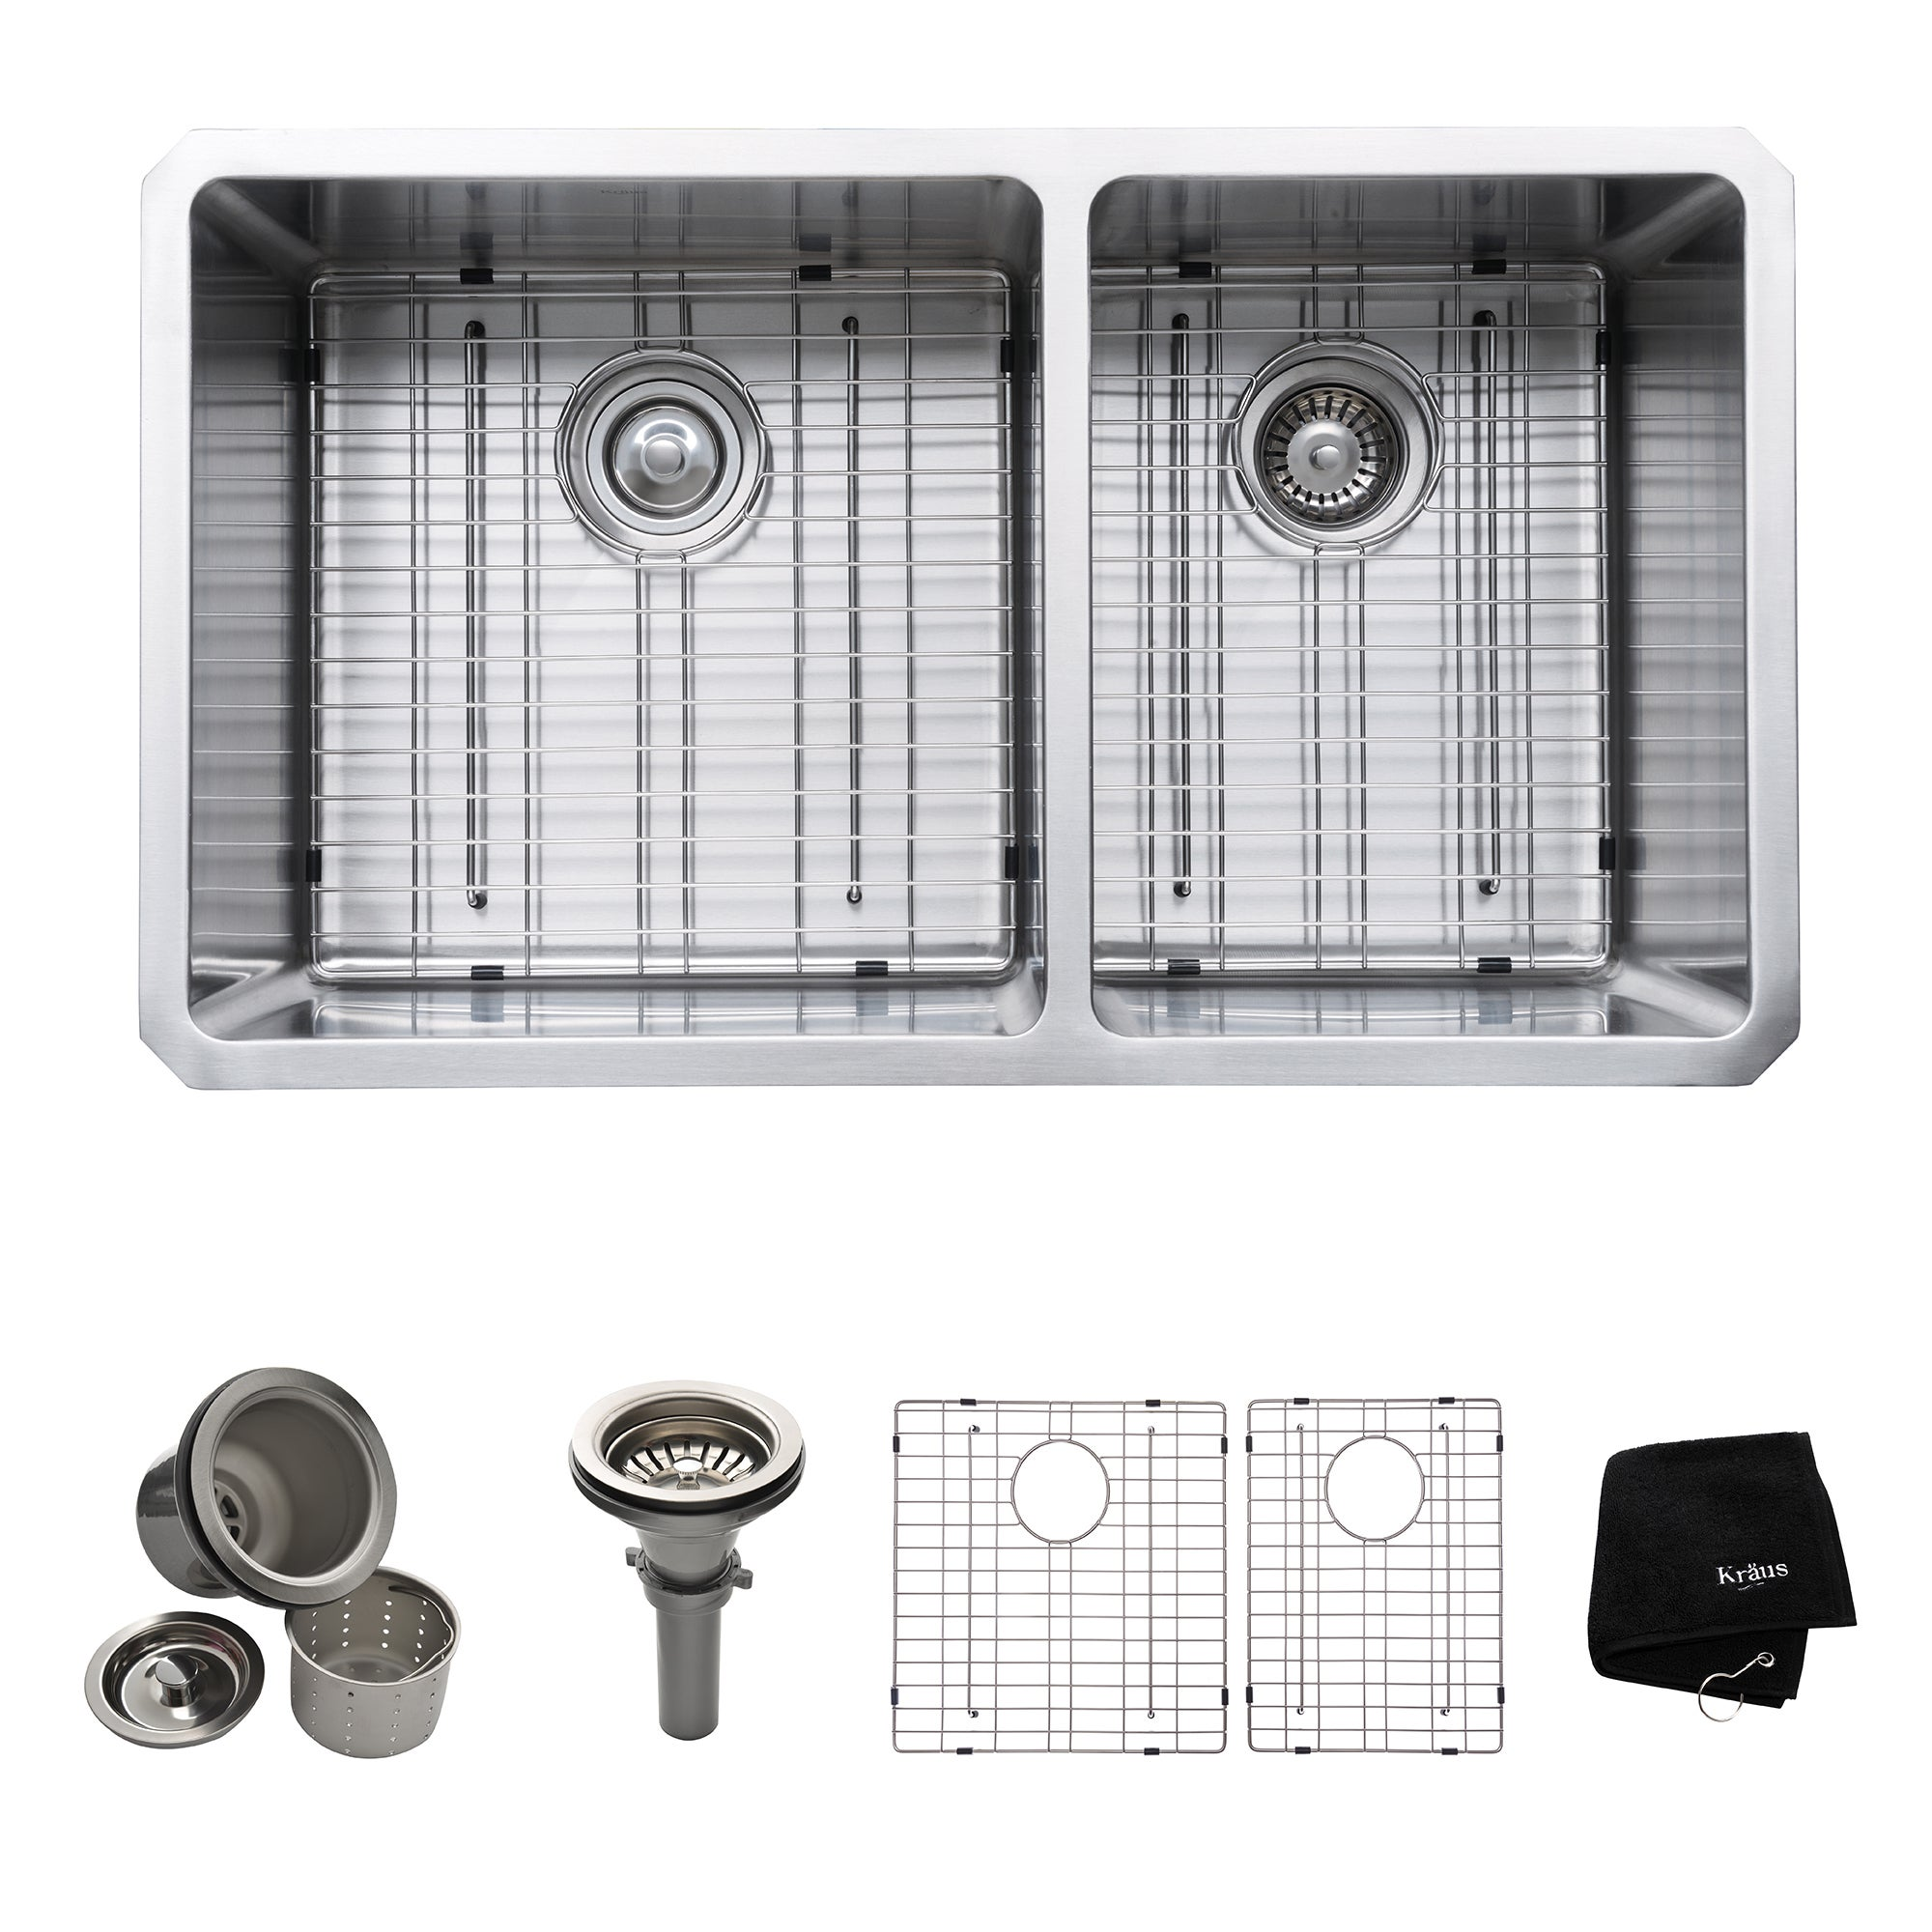 3db6b815c8 Shop Kraus KHU103-33 Undermount 33-in 16G 60/40 2-Bowl Satin Stainless  Steel Kitchen Sink, Grids, Strainers, Towel - On Sale - Free Shipping Today  ...